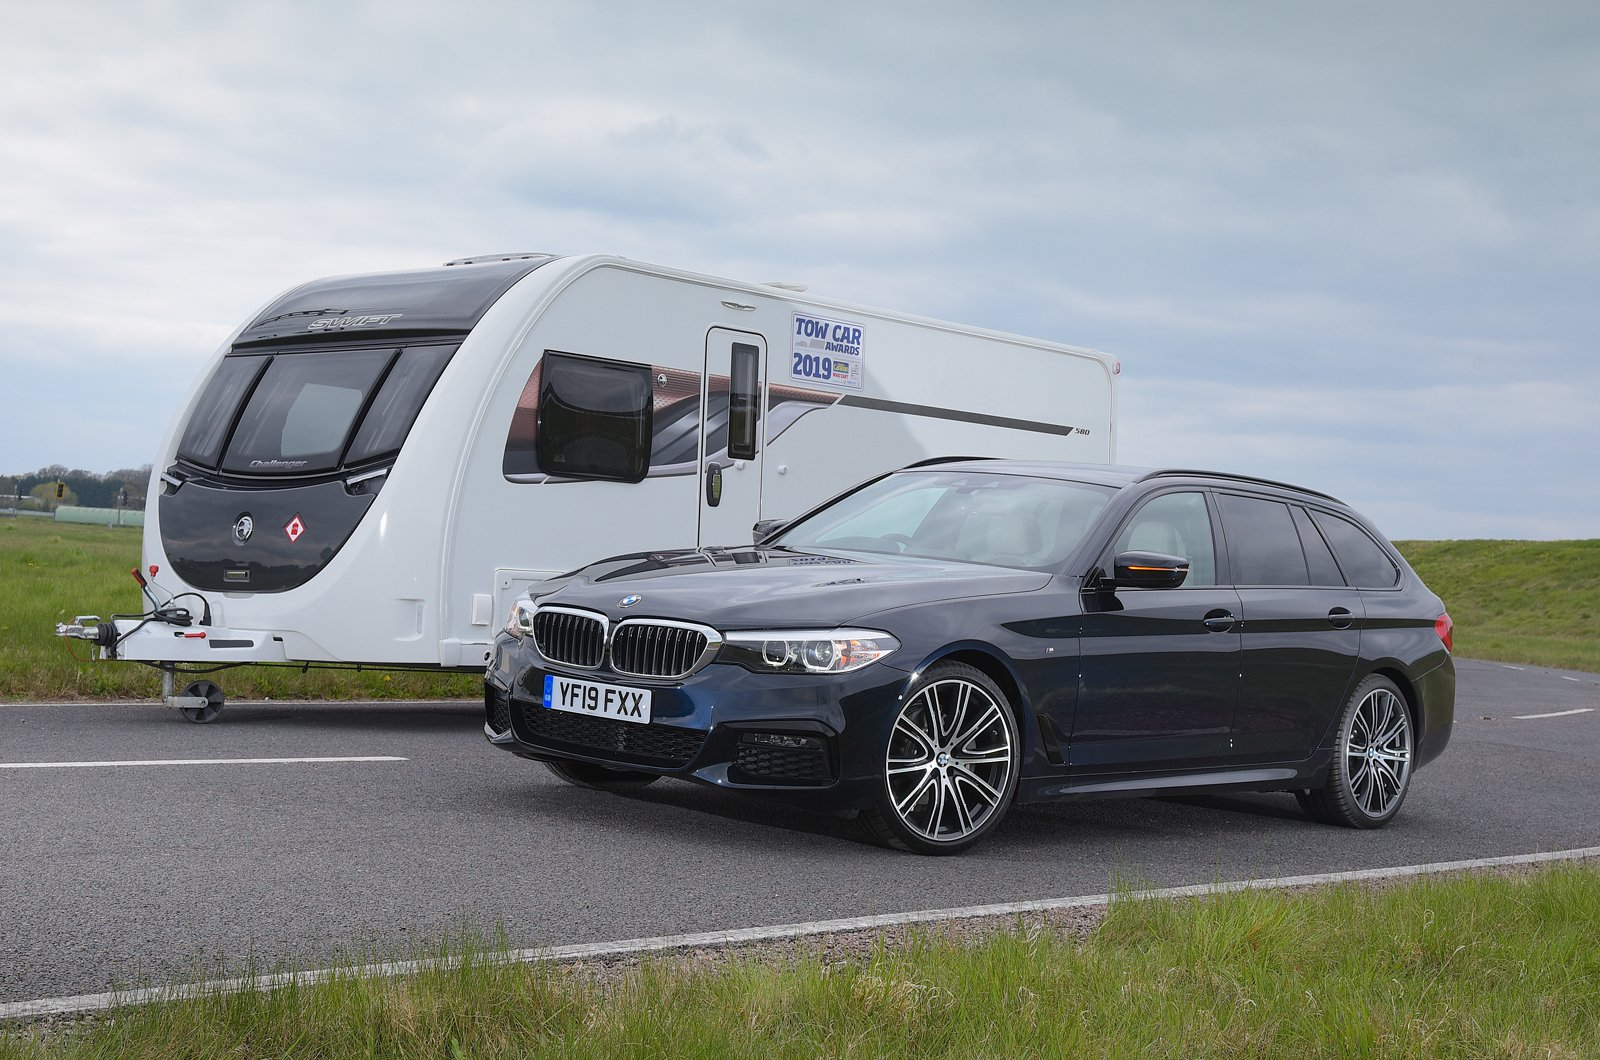 BMW 5 Series Touring with caravan